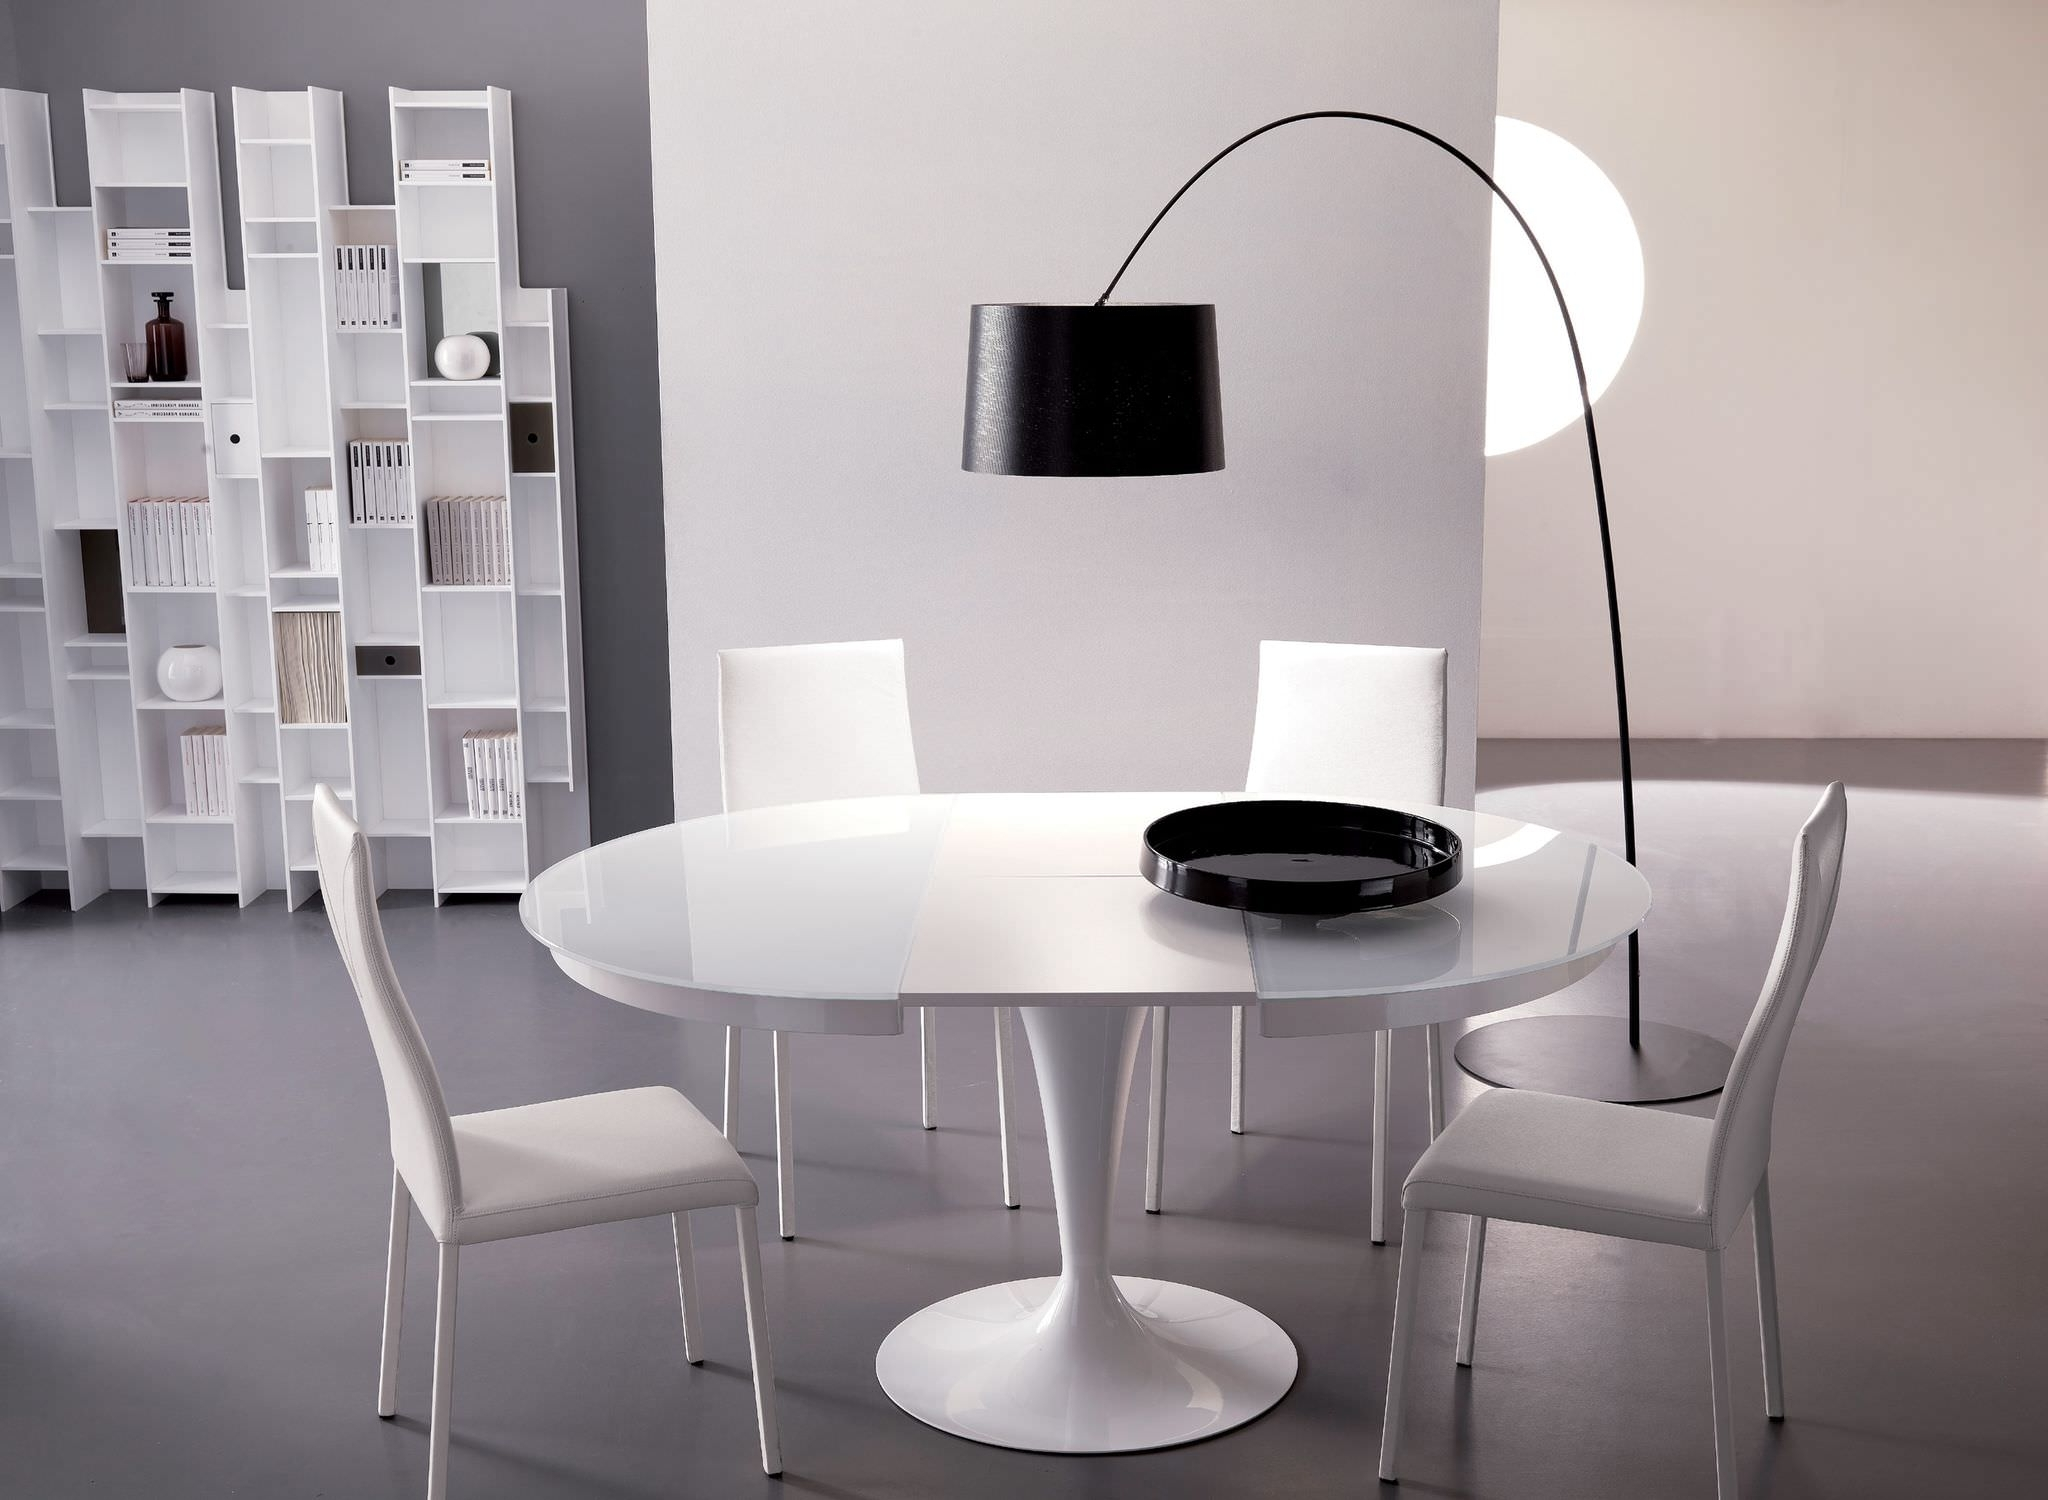 Trendy Dining Table: Archaic Design Ideas Using Rounded Black Standing Regarding White Round Extendable Dining Tables (View 24 of 25)